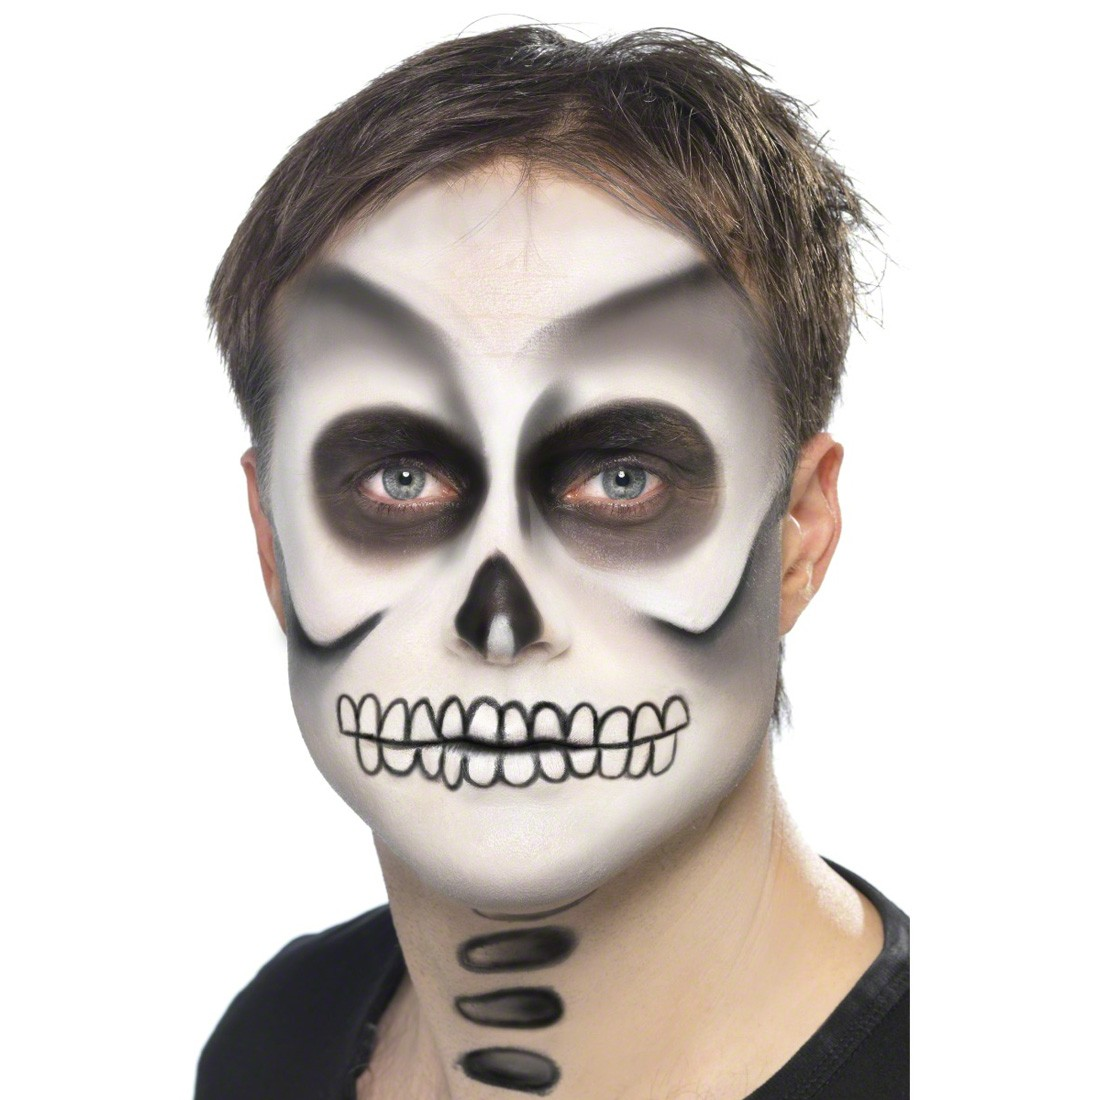 Skelett Make Up Halloweenschminke Skelettschminke Makeup Kostüm